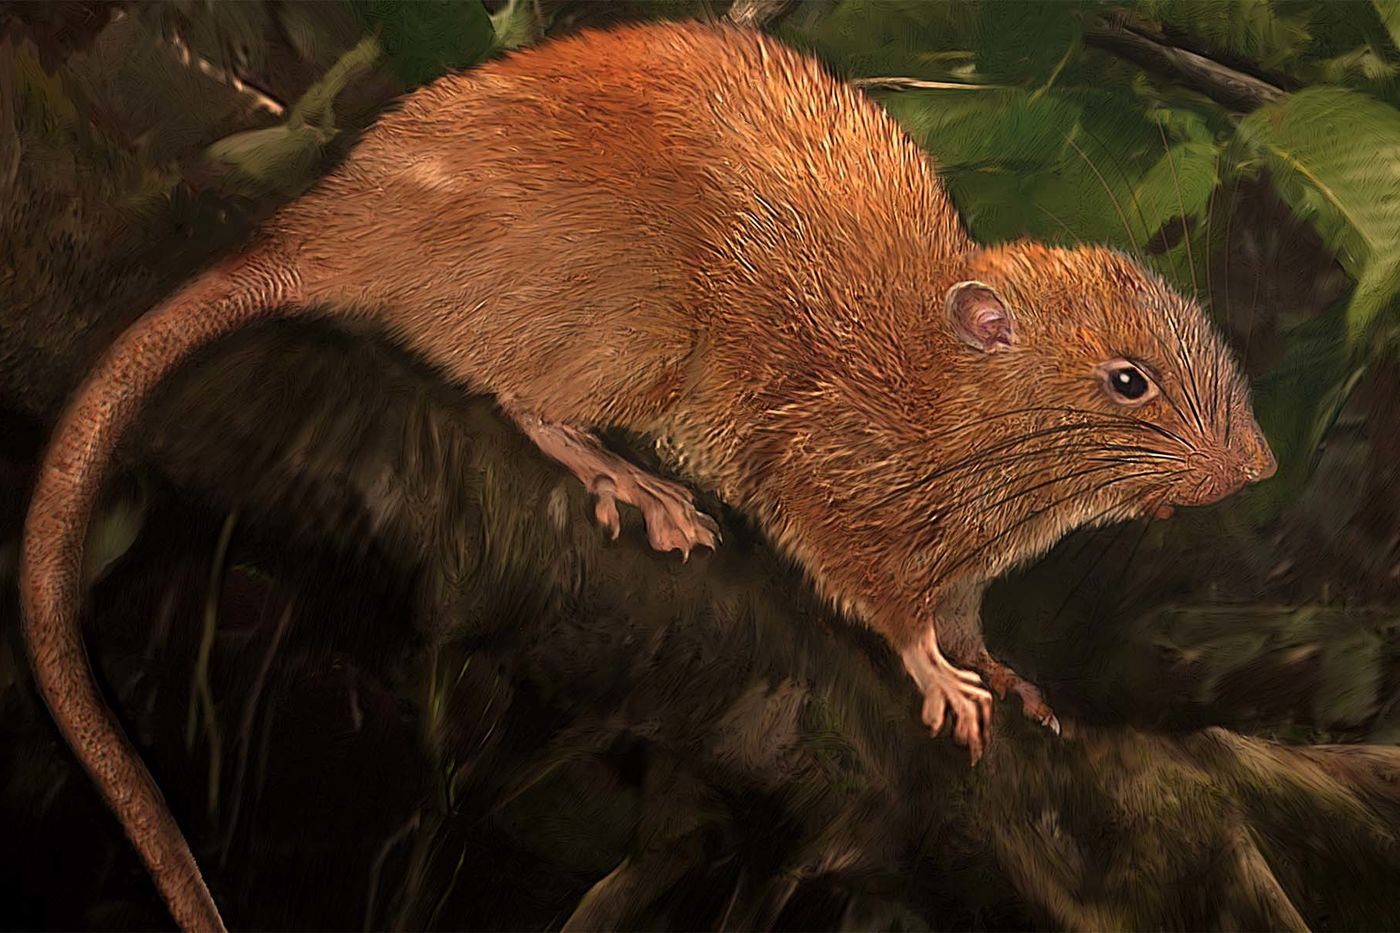 Lifelike illustration of a a large brown rat on a tree branch, surrounded by green foliage.